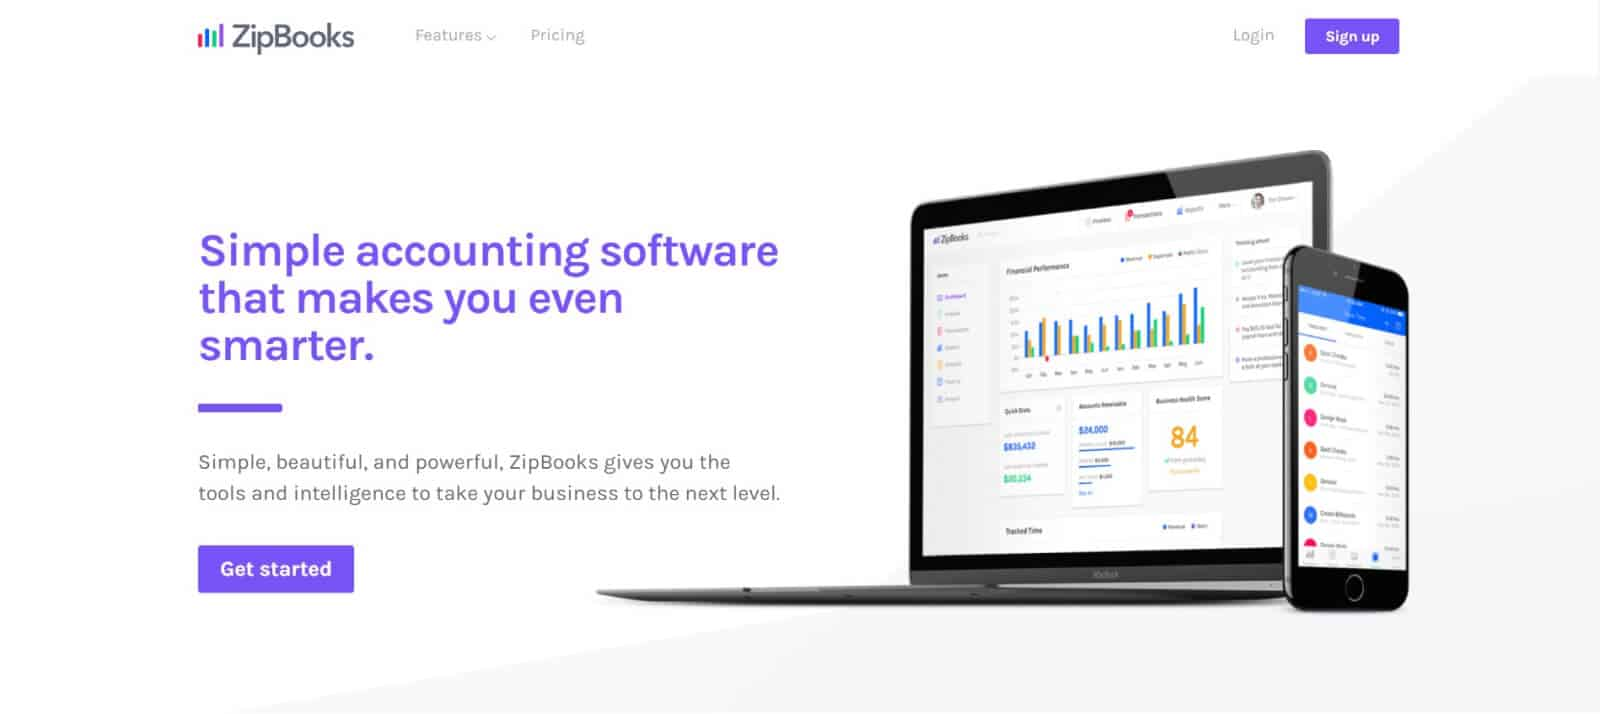 ZipBooks is advertised as a free accounting and invoicing software